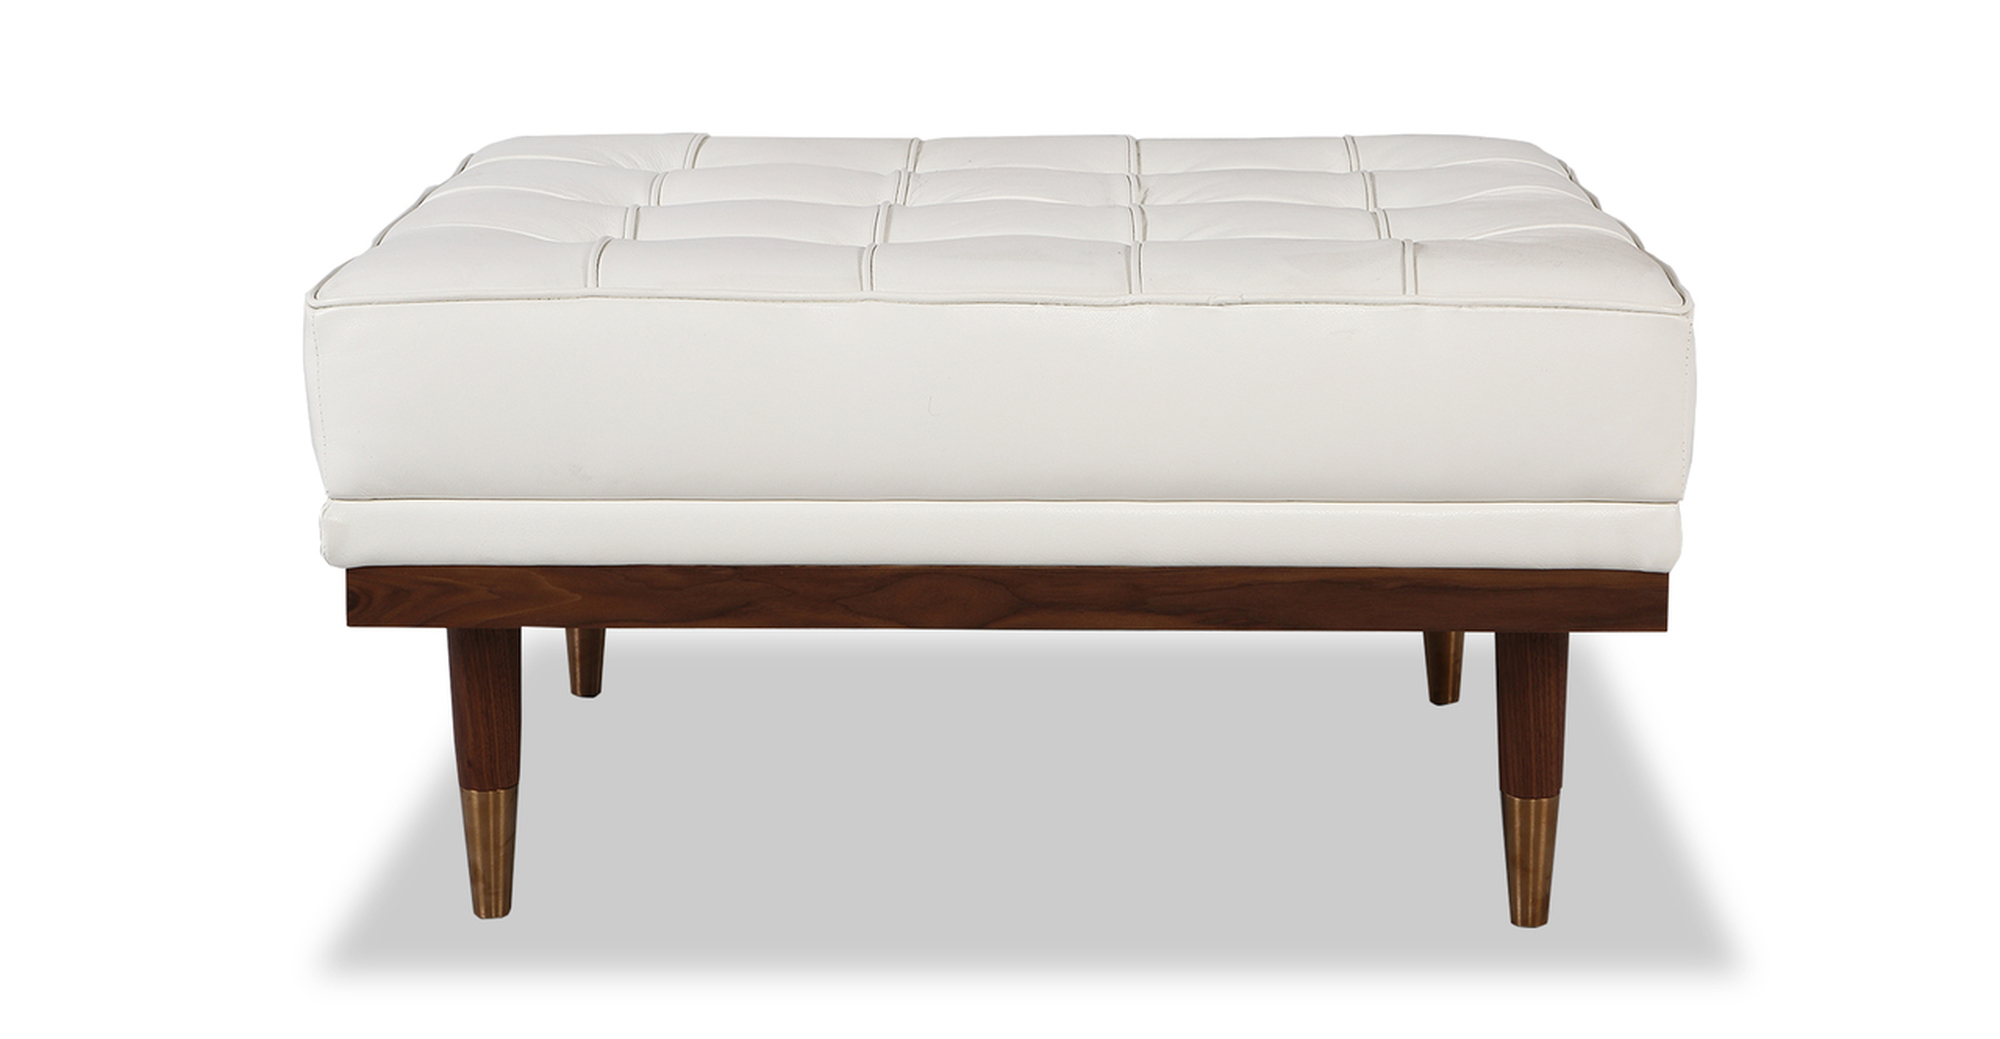 "Woodrow 33"" Box Leather Ottoman, Walnut/White Aniline"